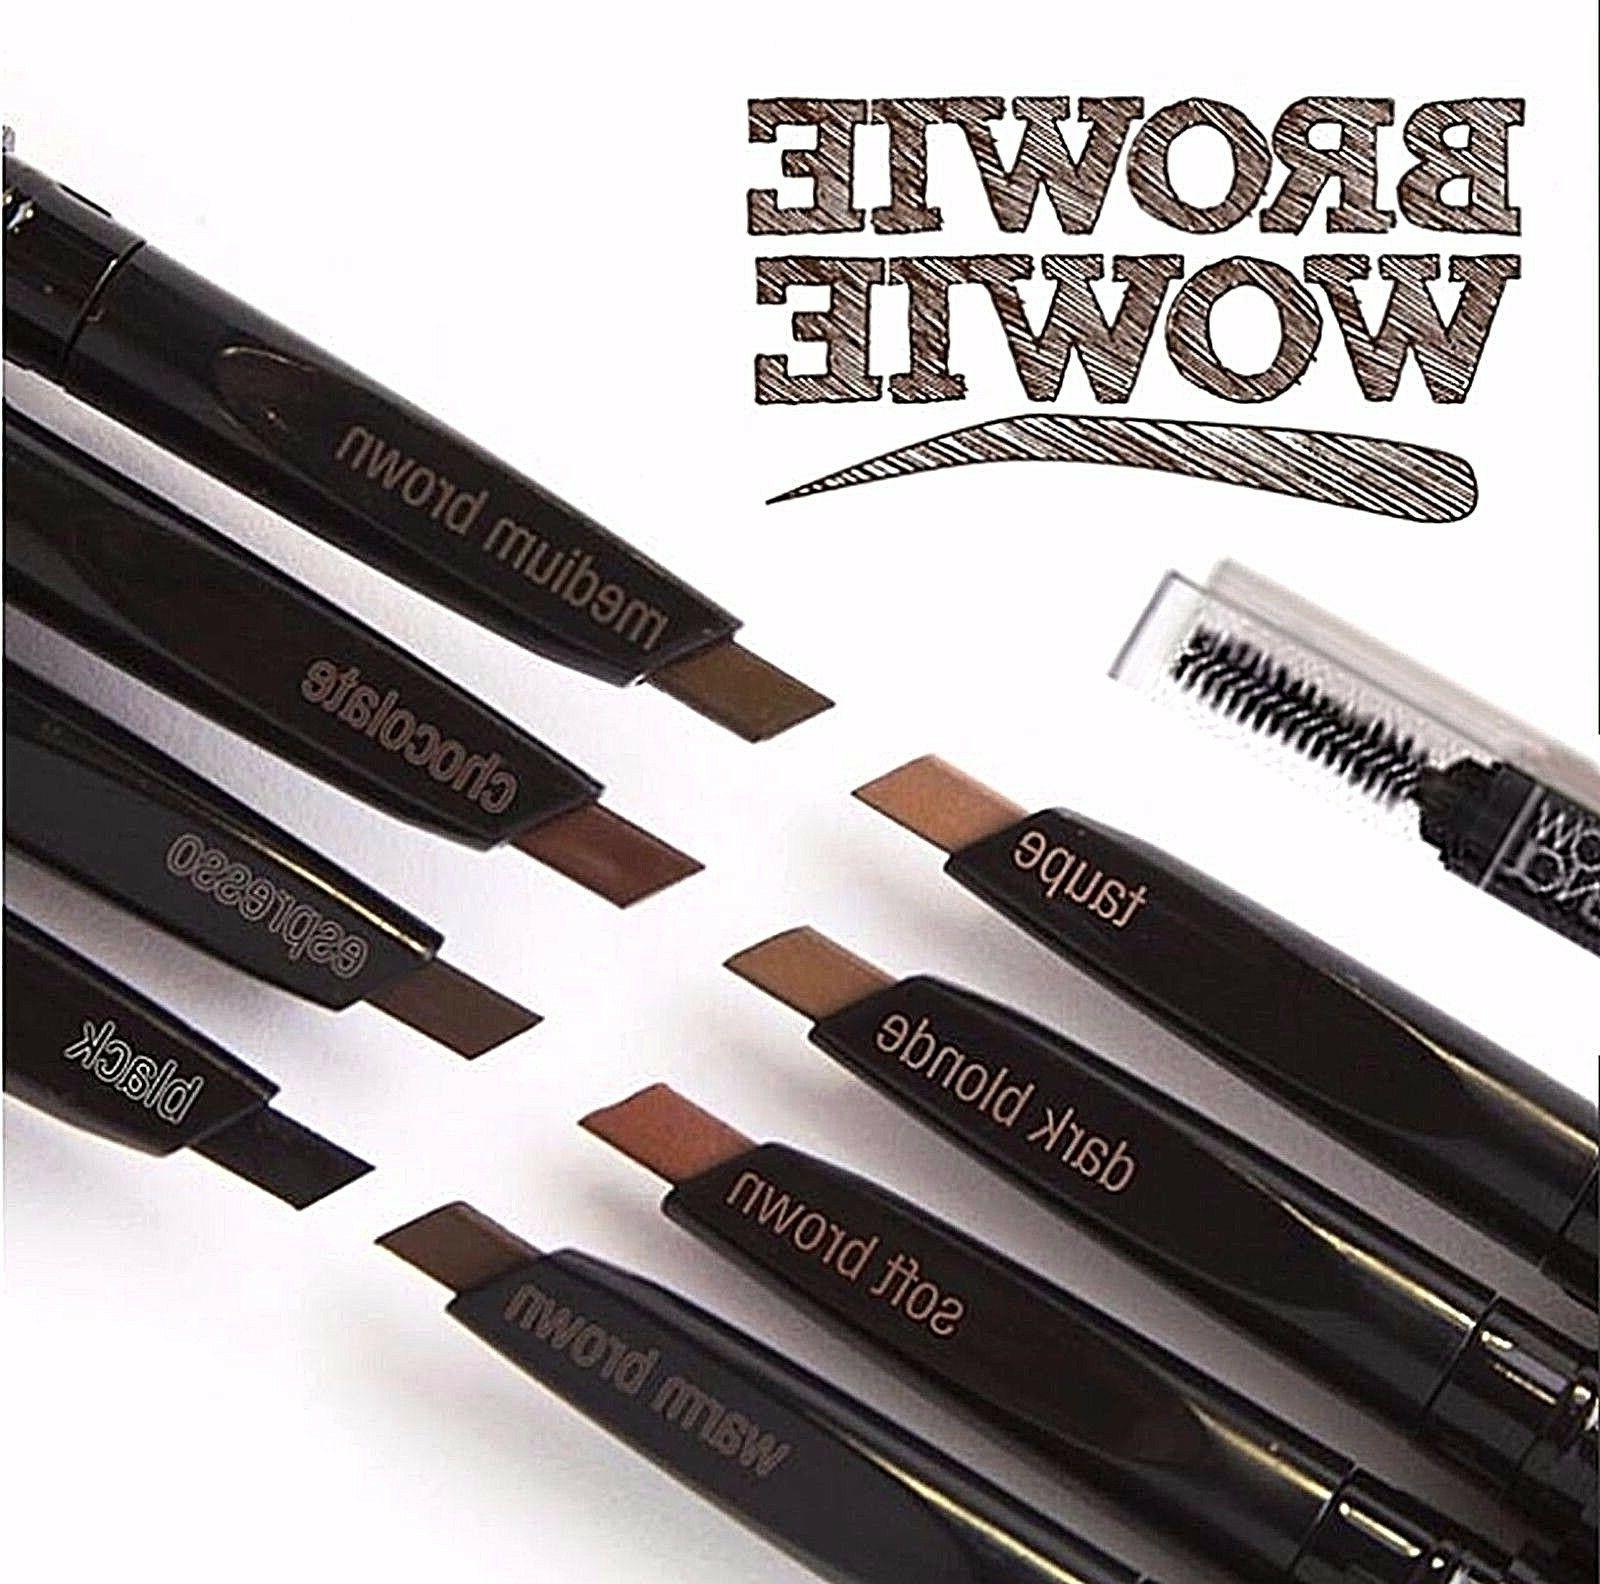 eyebrow pencil retractable slant tip and brush